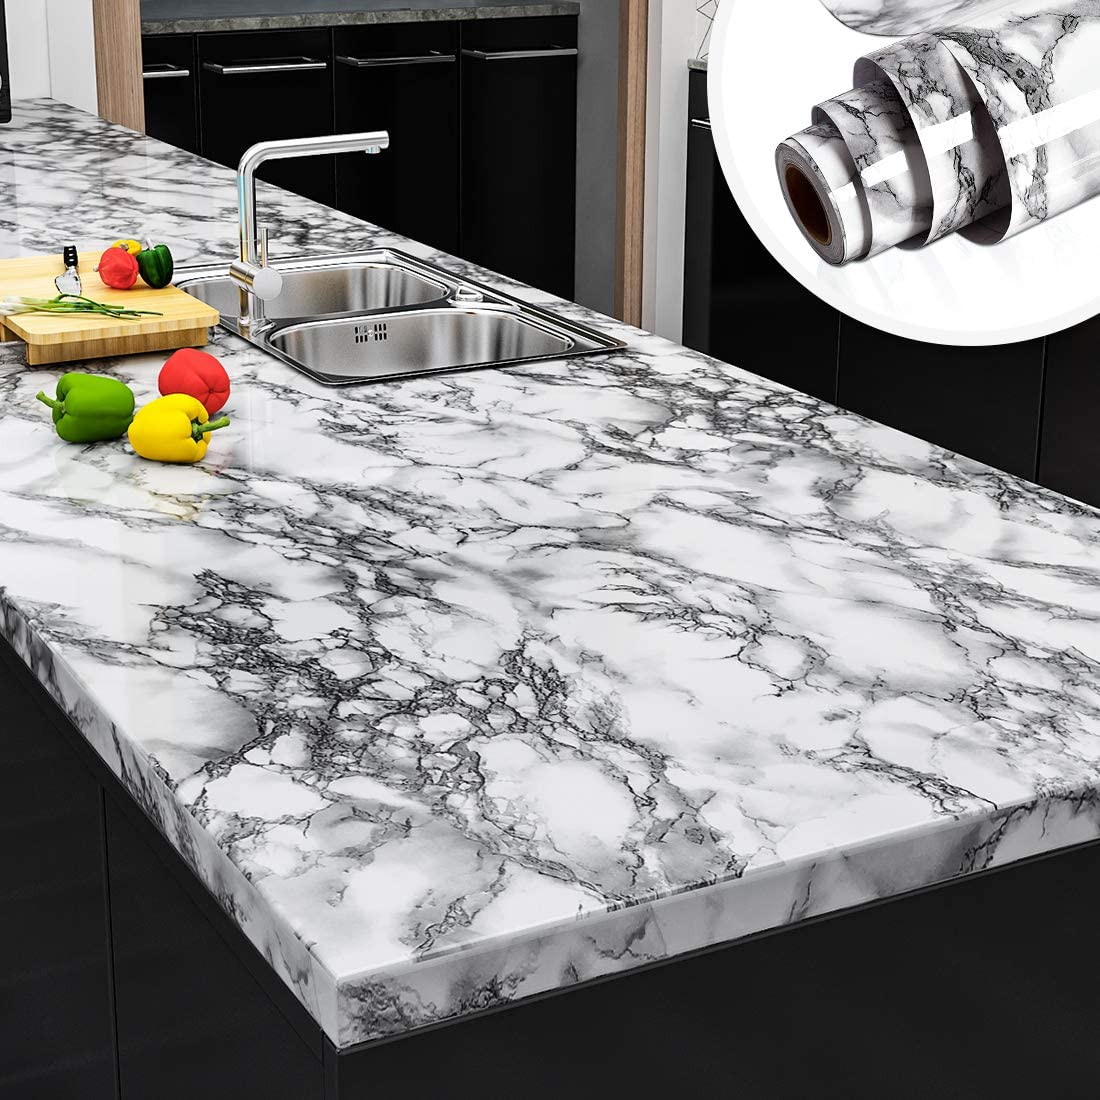 Amazon Com Yenhome Faux Peel And Stick Countertops 24 X 196 Landscape White Marble Wallpaper For Kitchen Backsplash Cabinets Cover Shelf Liner Peel And Stick Wallpaper For Bathroom Wall Decor Vinyl Film Home